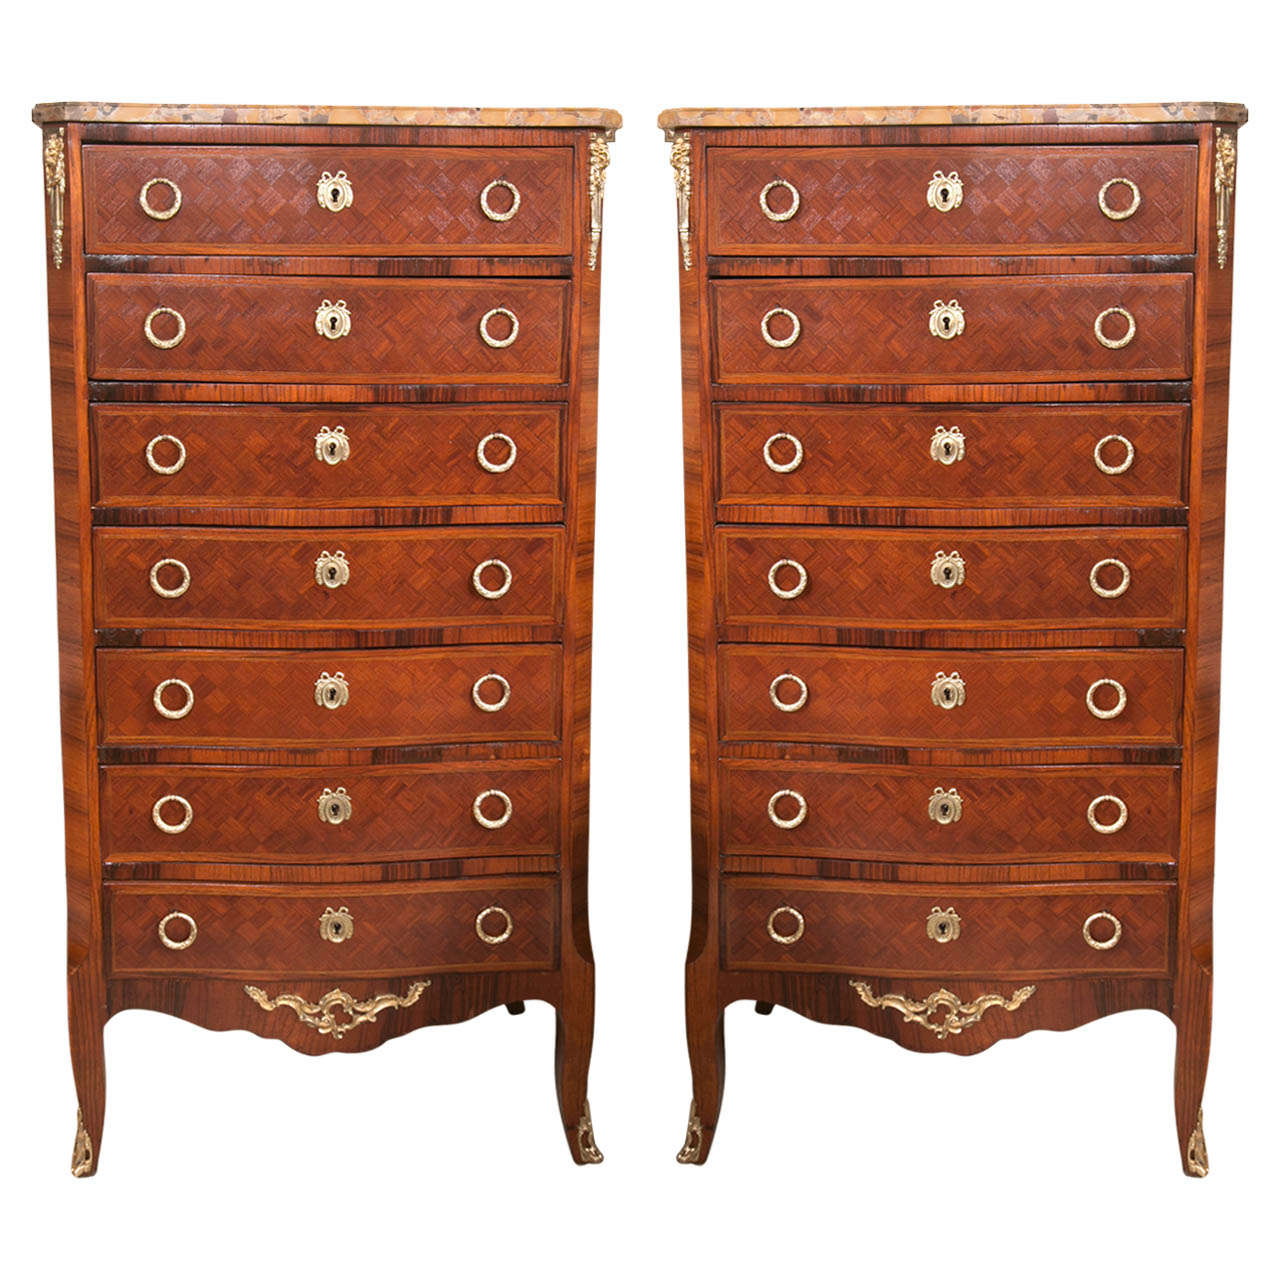 Beautiful Pair of Marble Topped  Semainiers